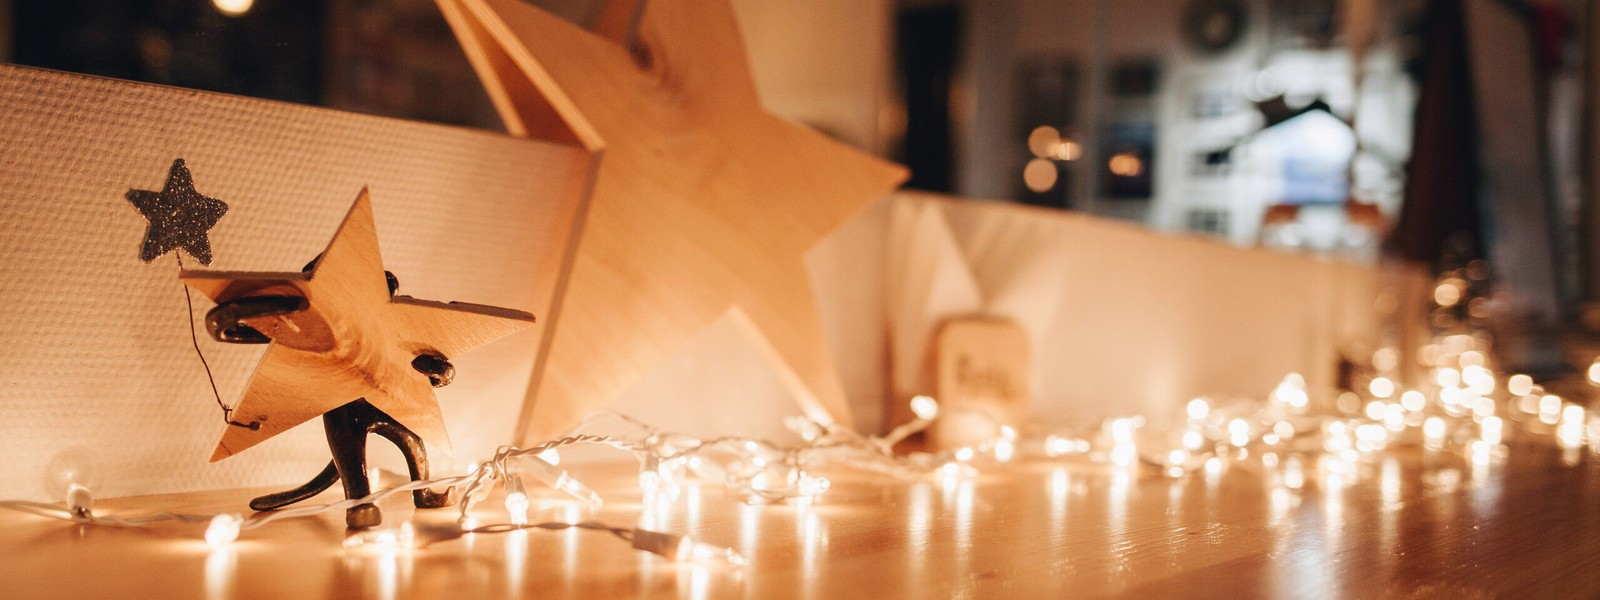 The Importance Of Getting An Electrical Safety Inspection This Holiday Season